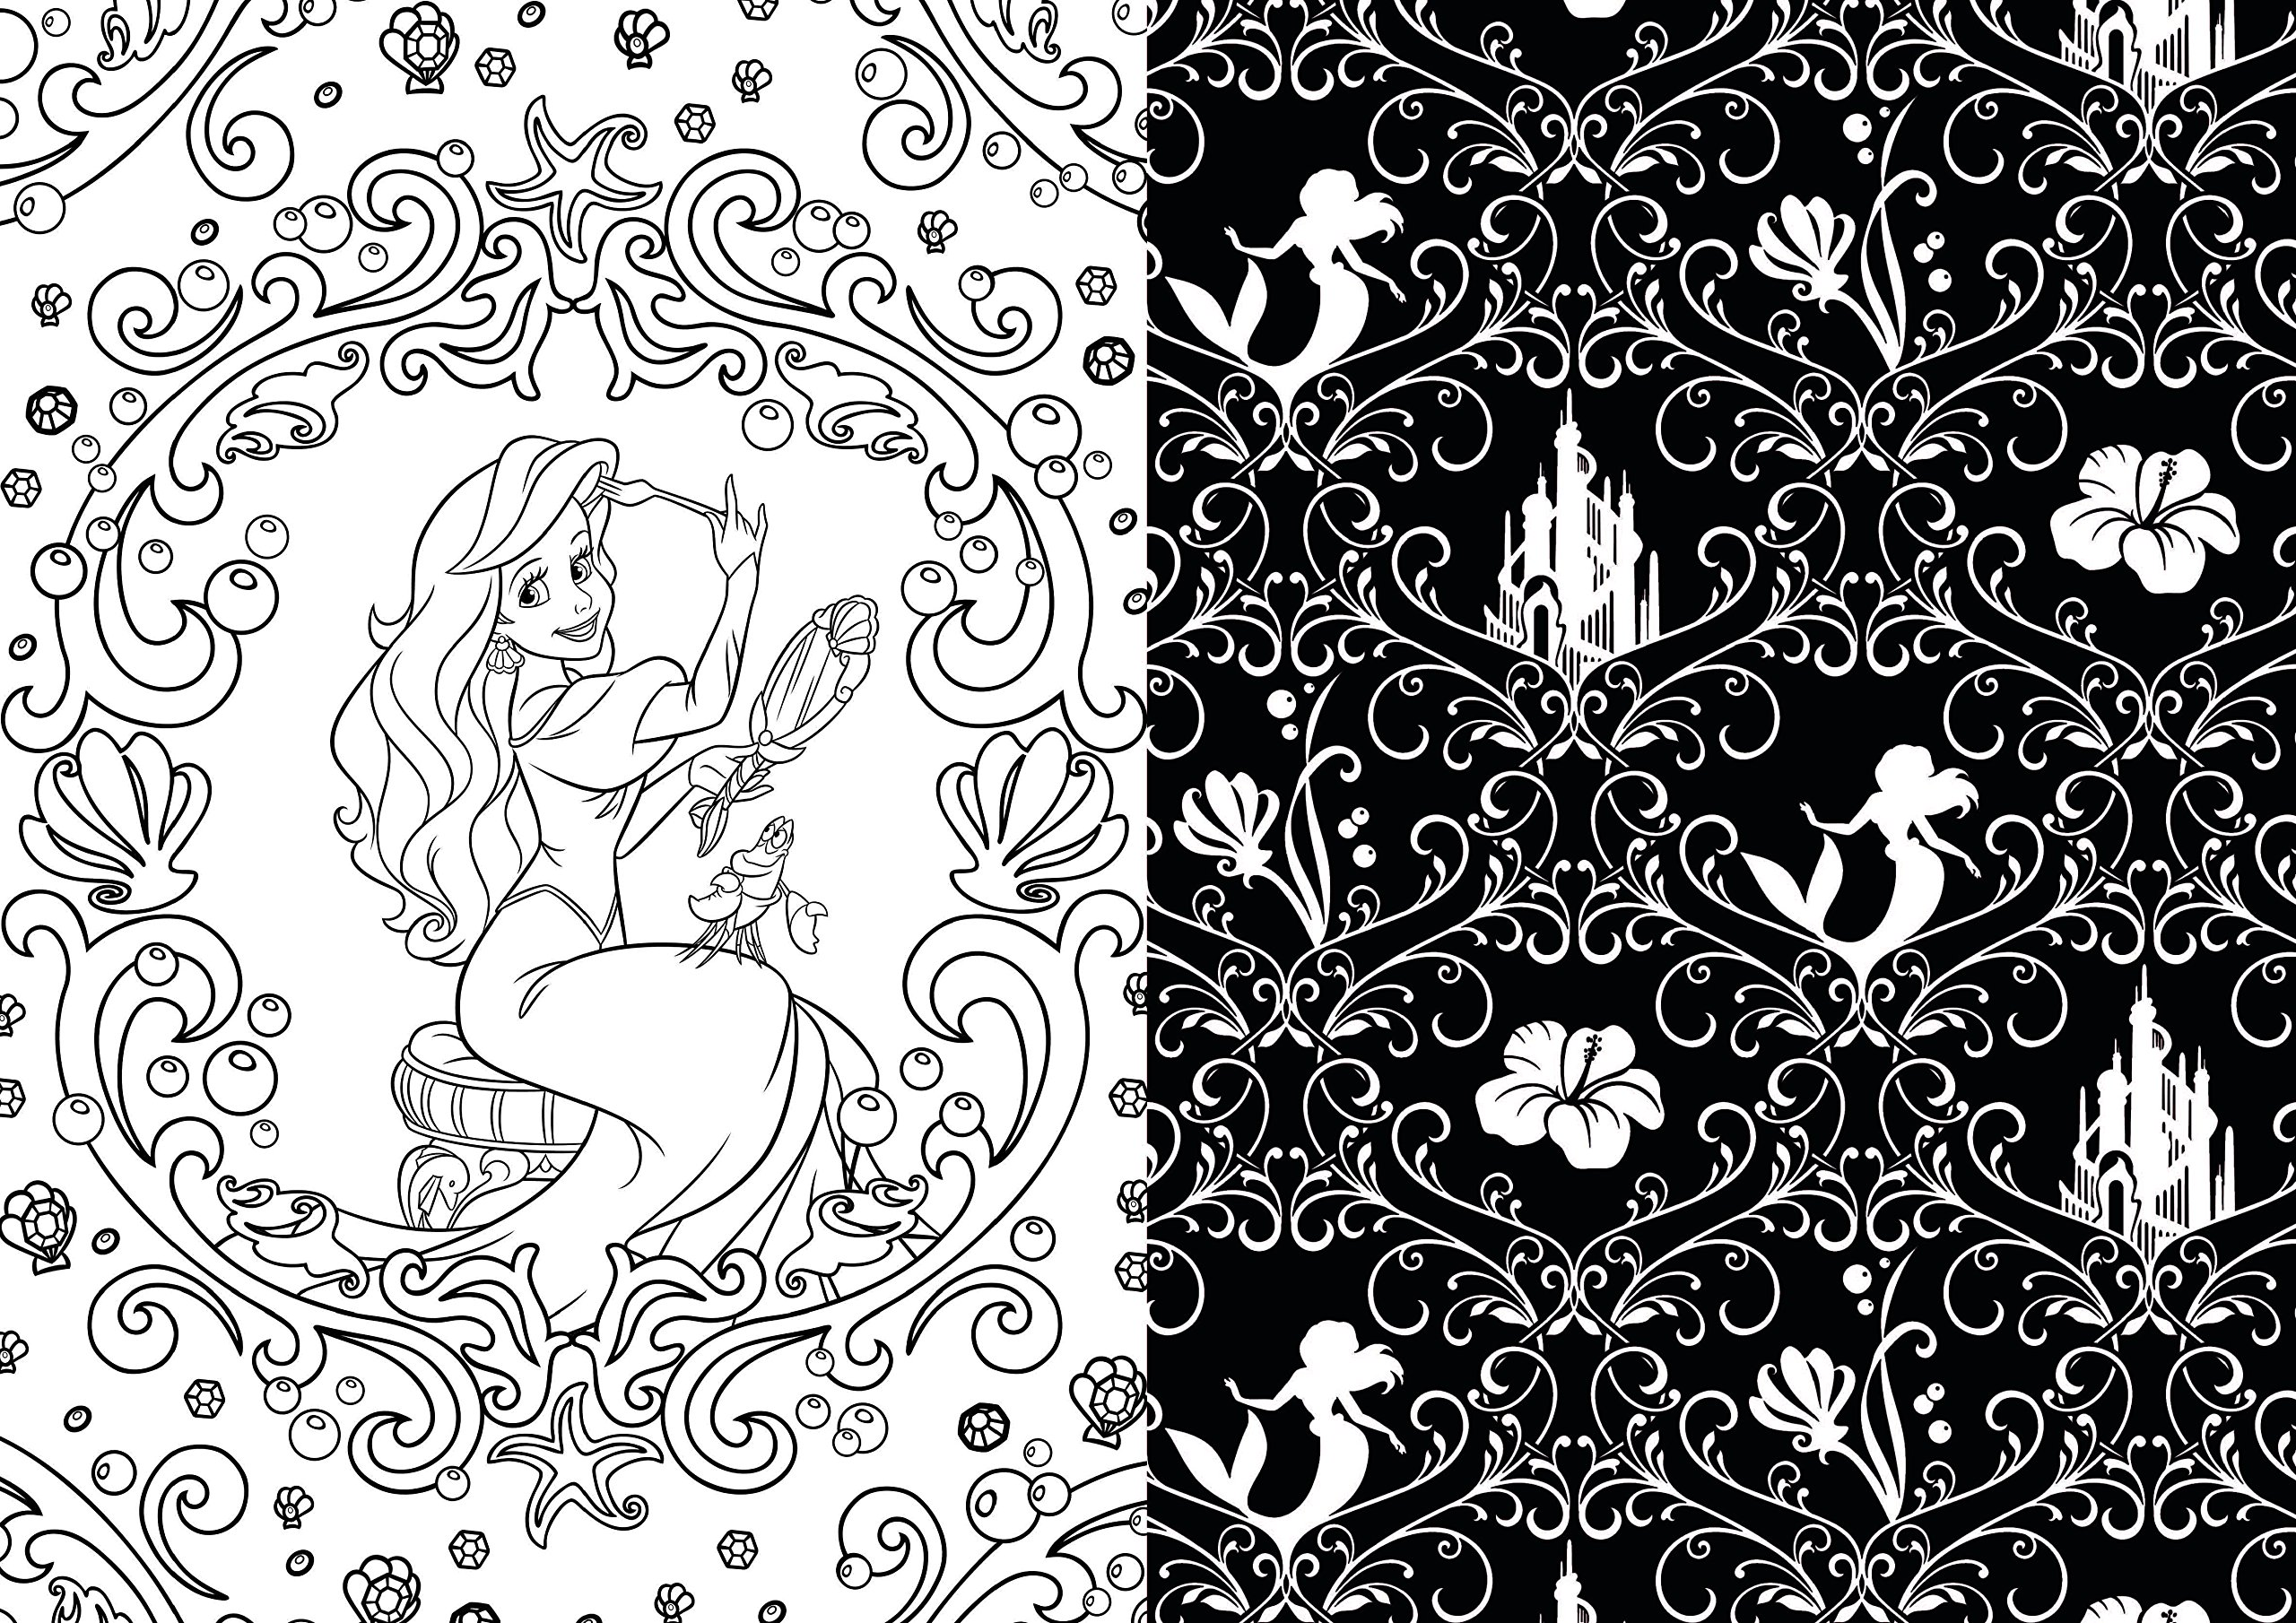 Art of Coloring Disney Princess 100 to Inspire Creativity